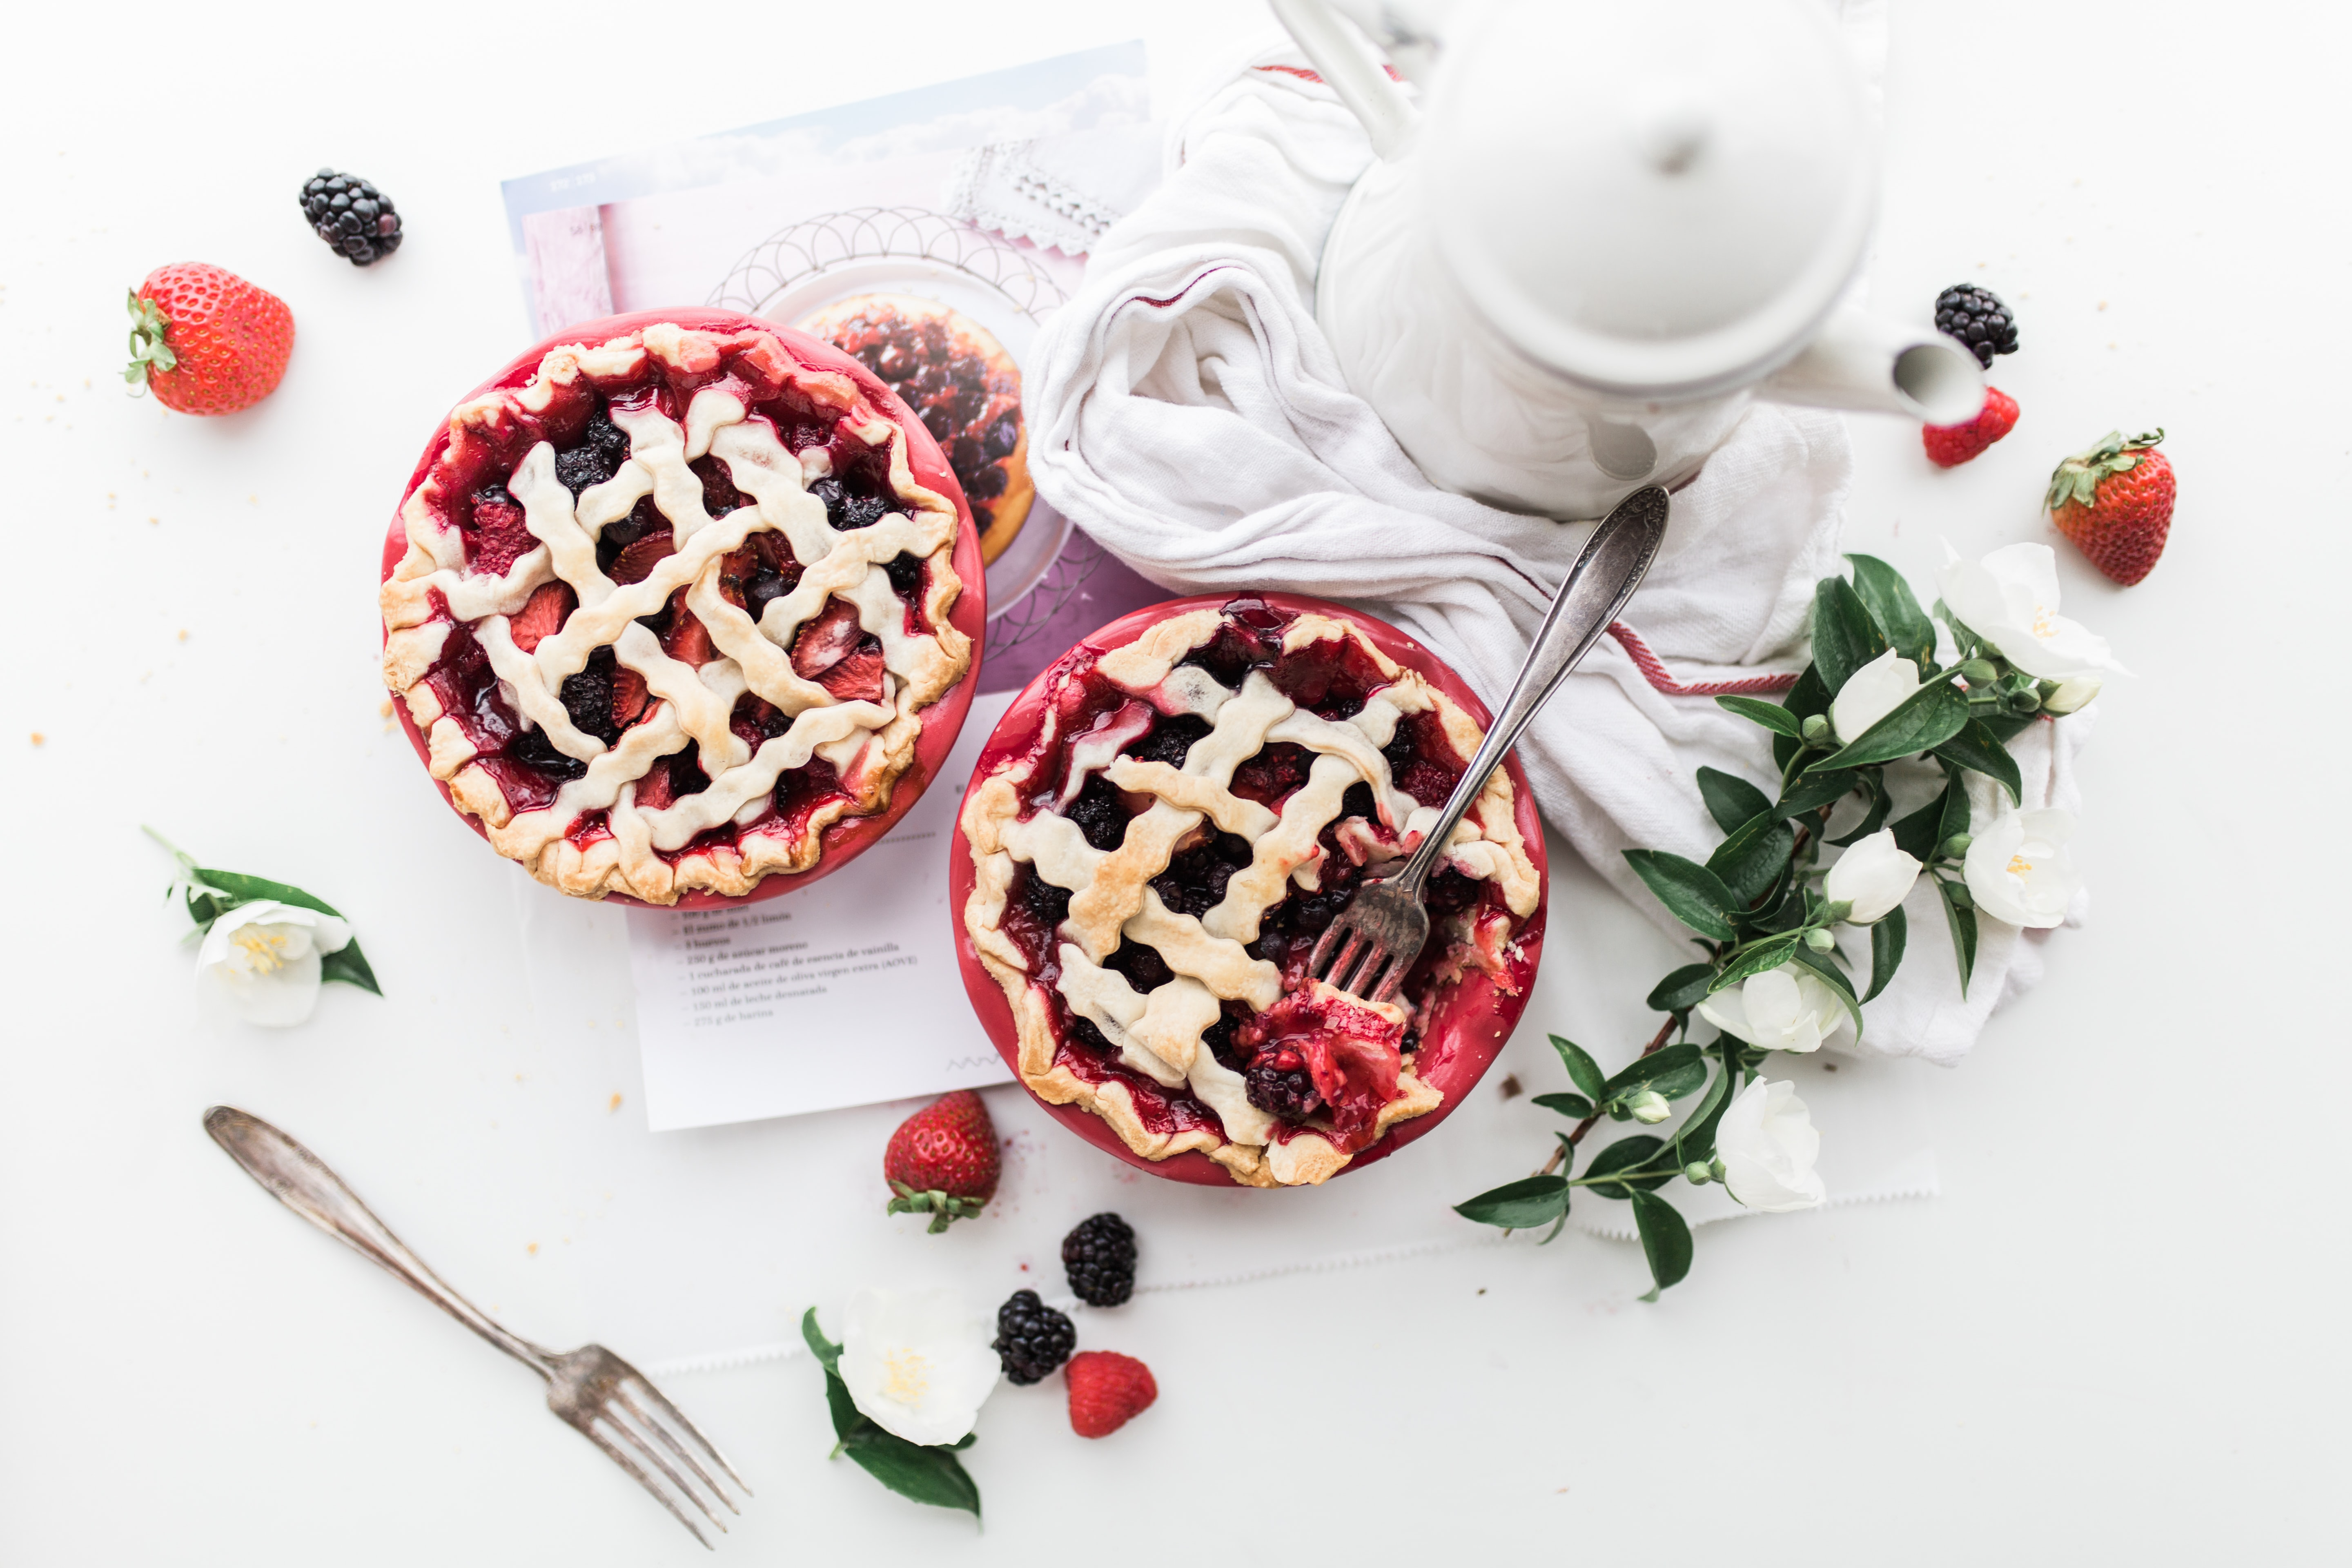 An overhead shot of strawberry and blackberry pies next to a white coffee pot and a bunch of flowers